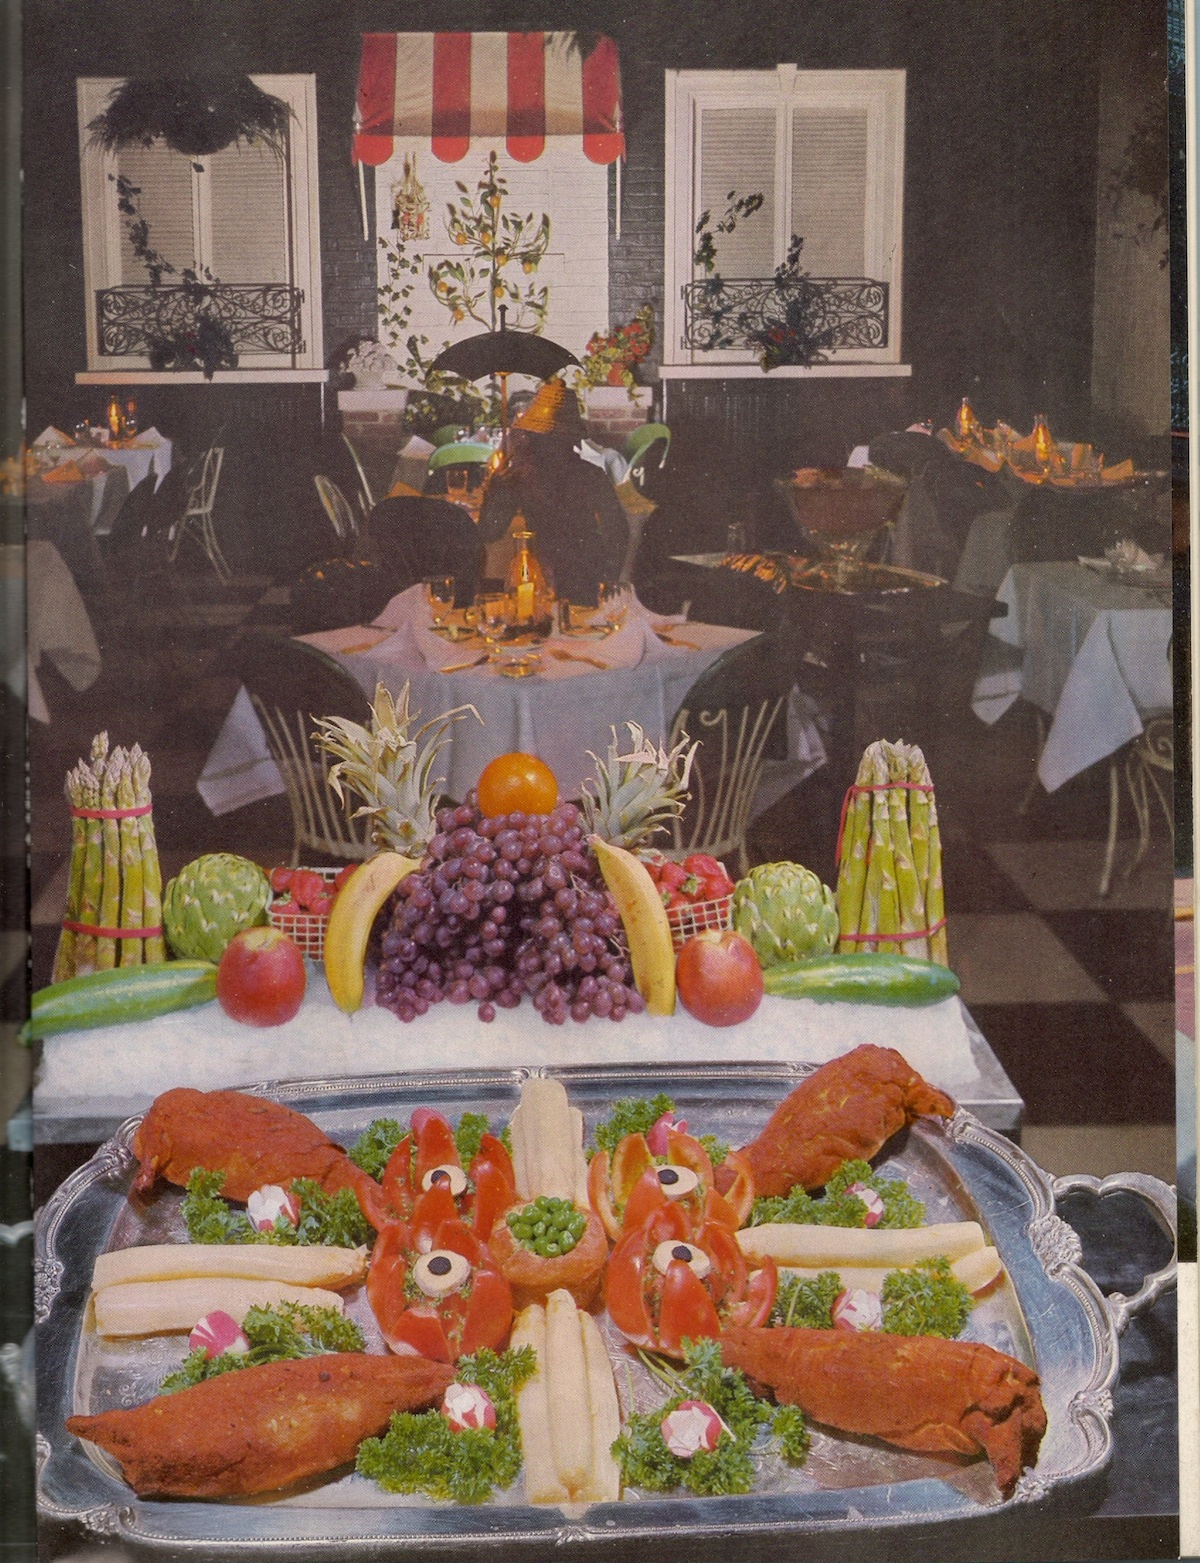 Imperial House Restaurant, Chicago It's Chicken Kiev with asparagus! 1958 Life Picture Cookbook